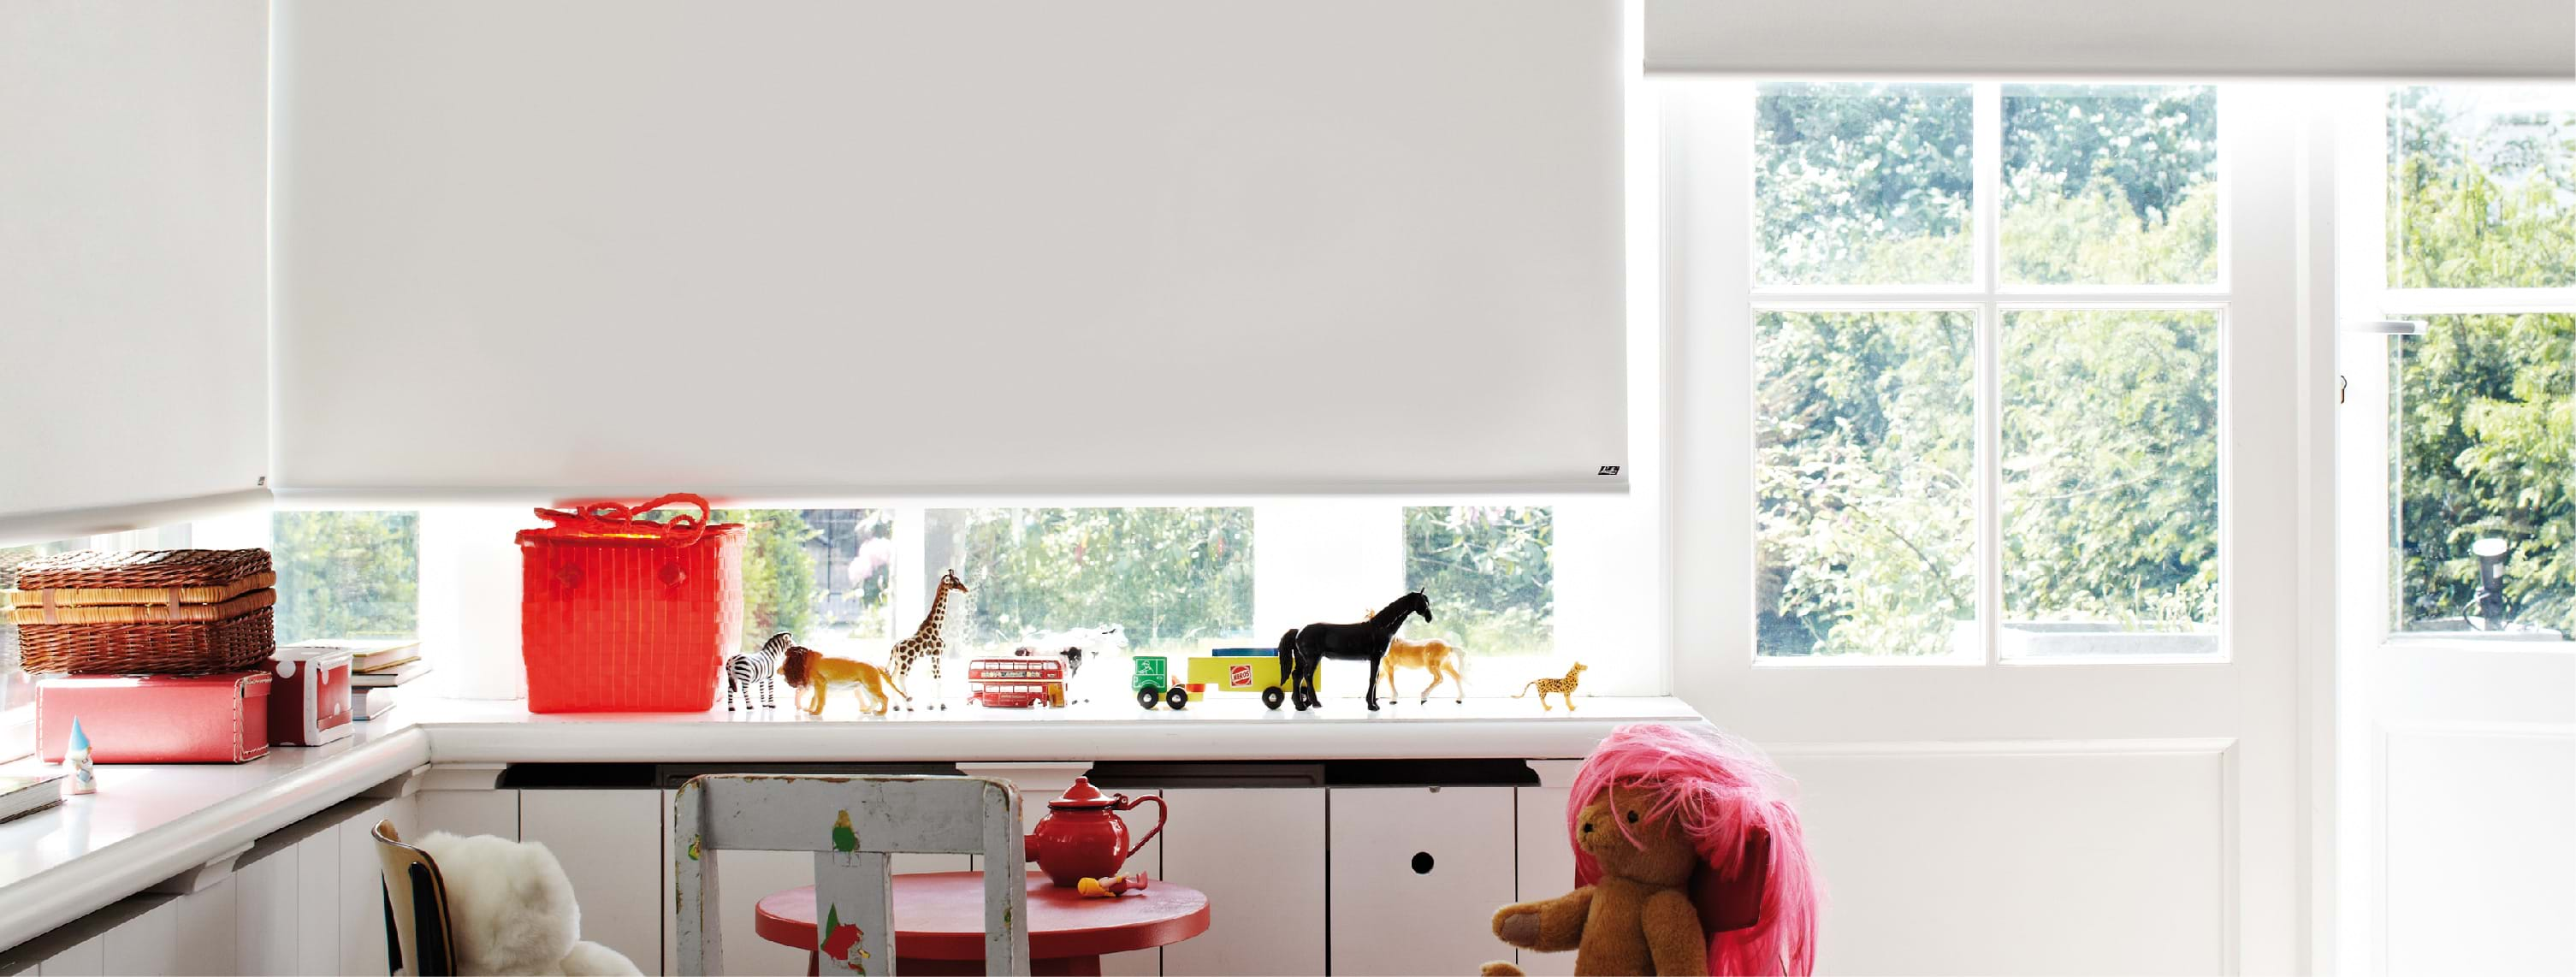 Luxaflex Roller Blinds: Safe for your home, safe for you Image